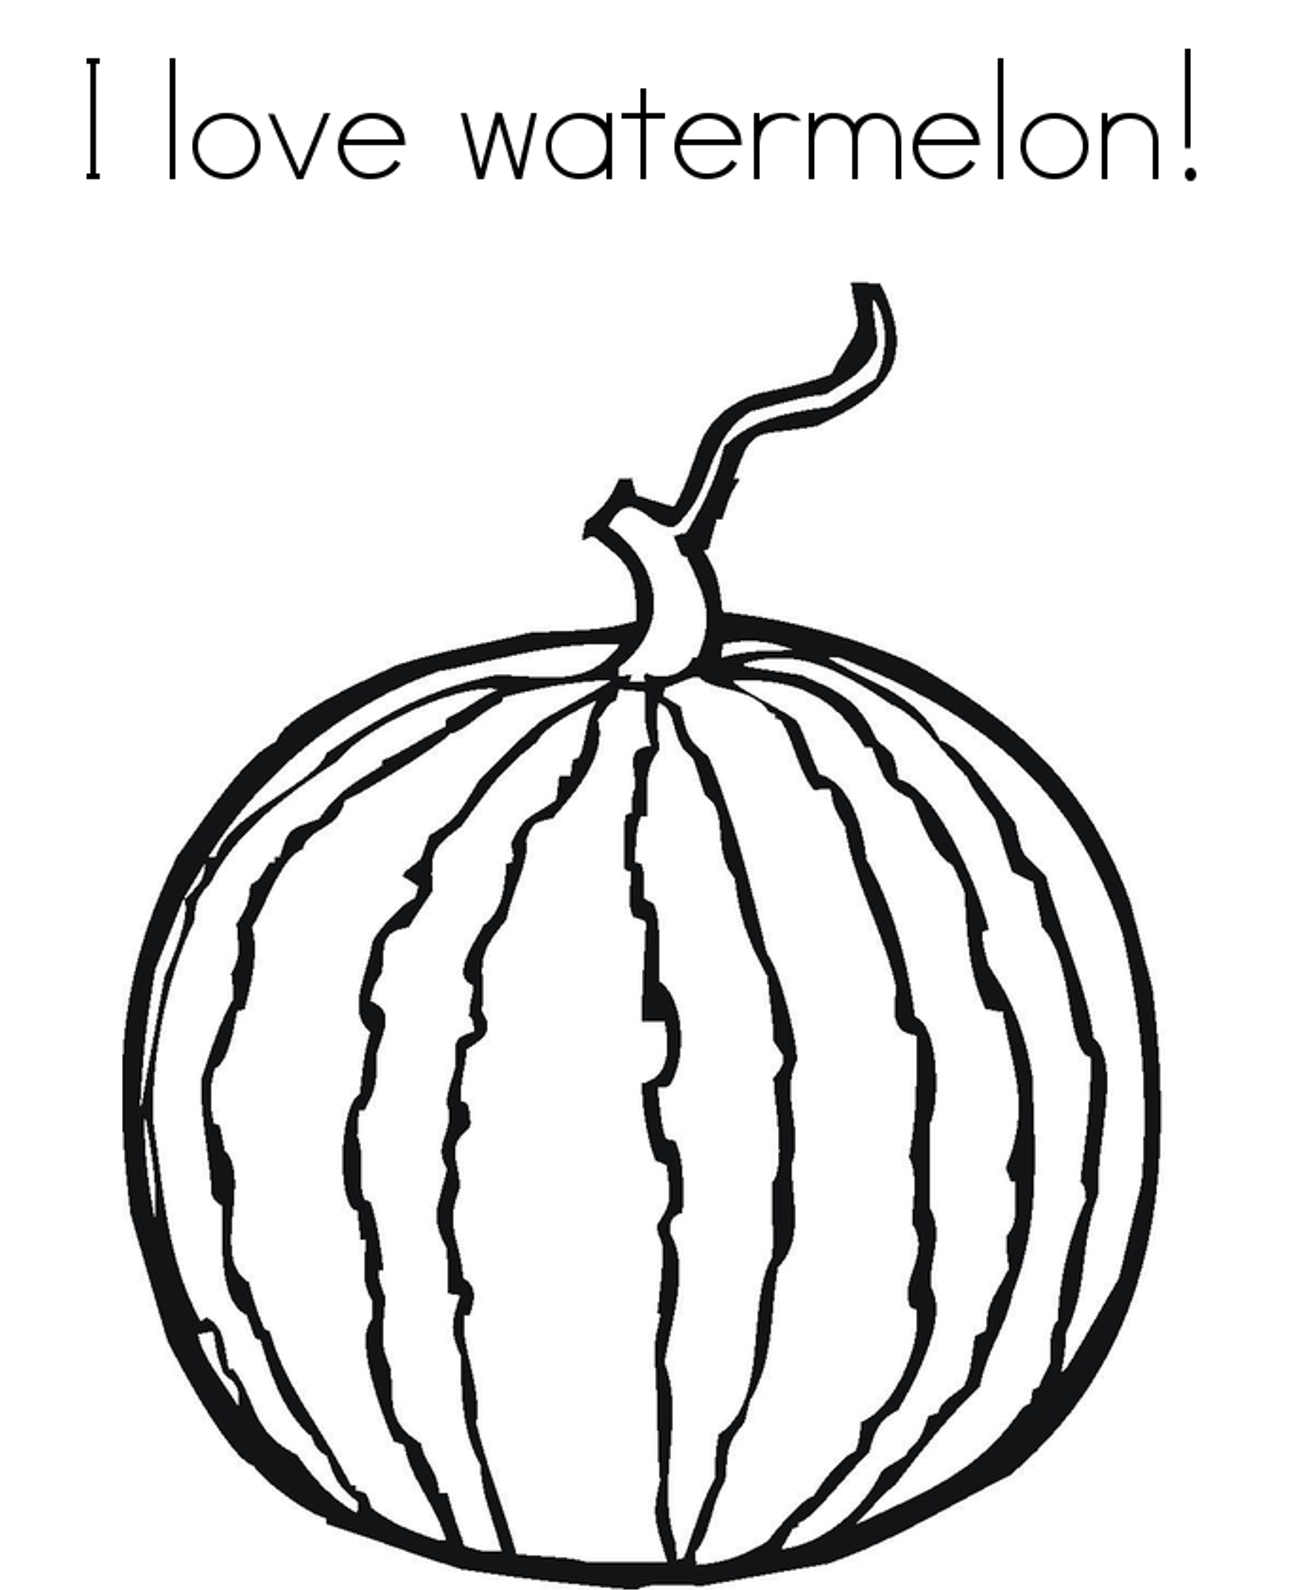 watermelon for coloring water melon drawing at getdrawings free download watermelon for coloring